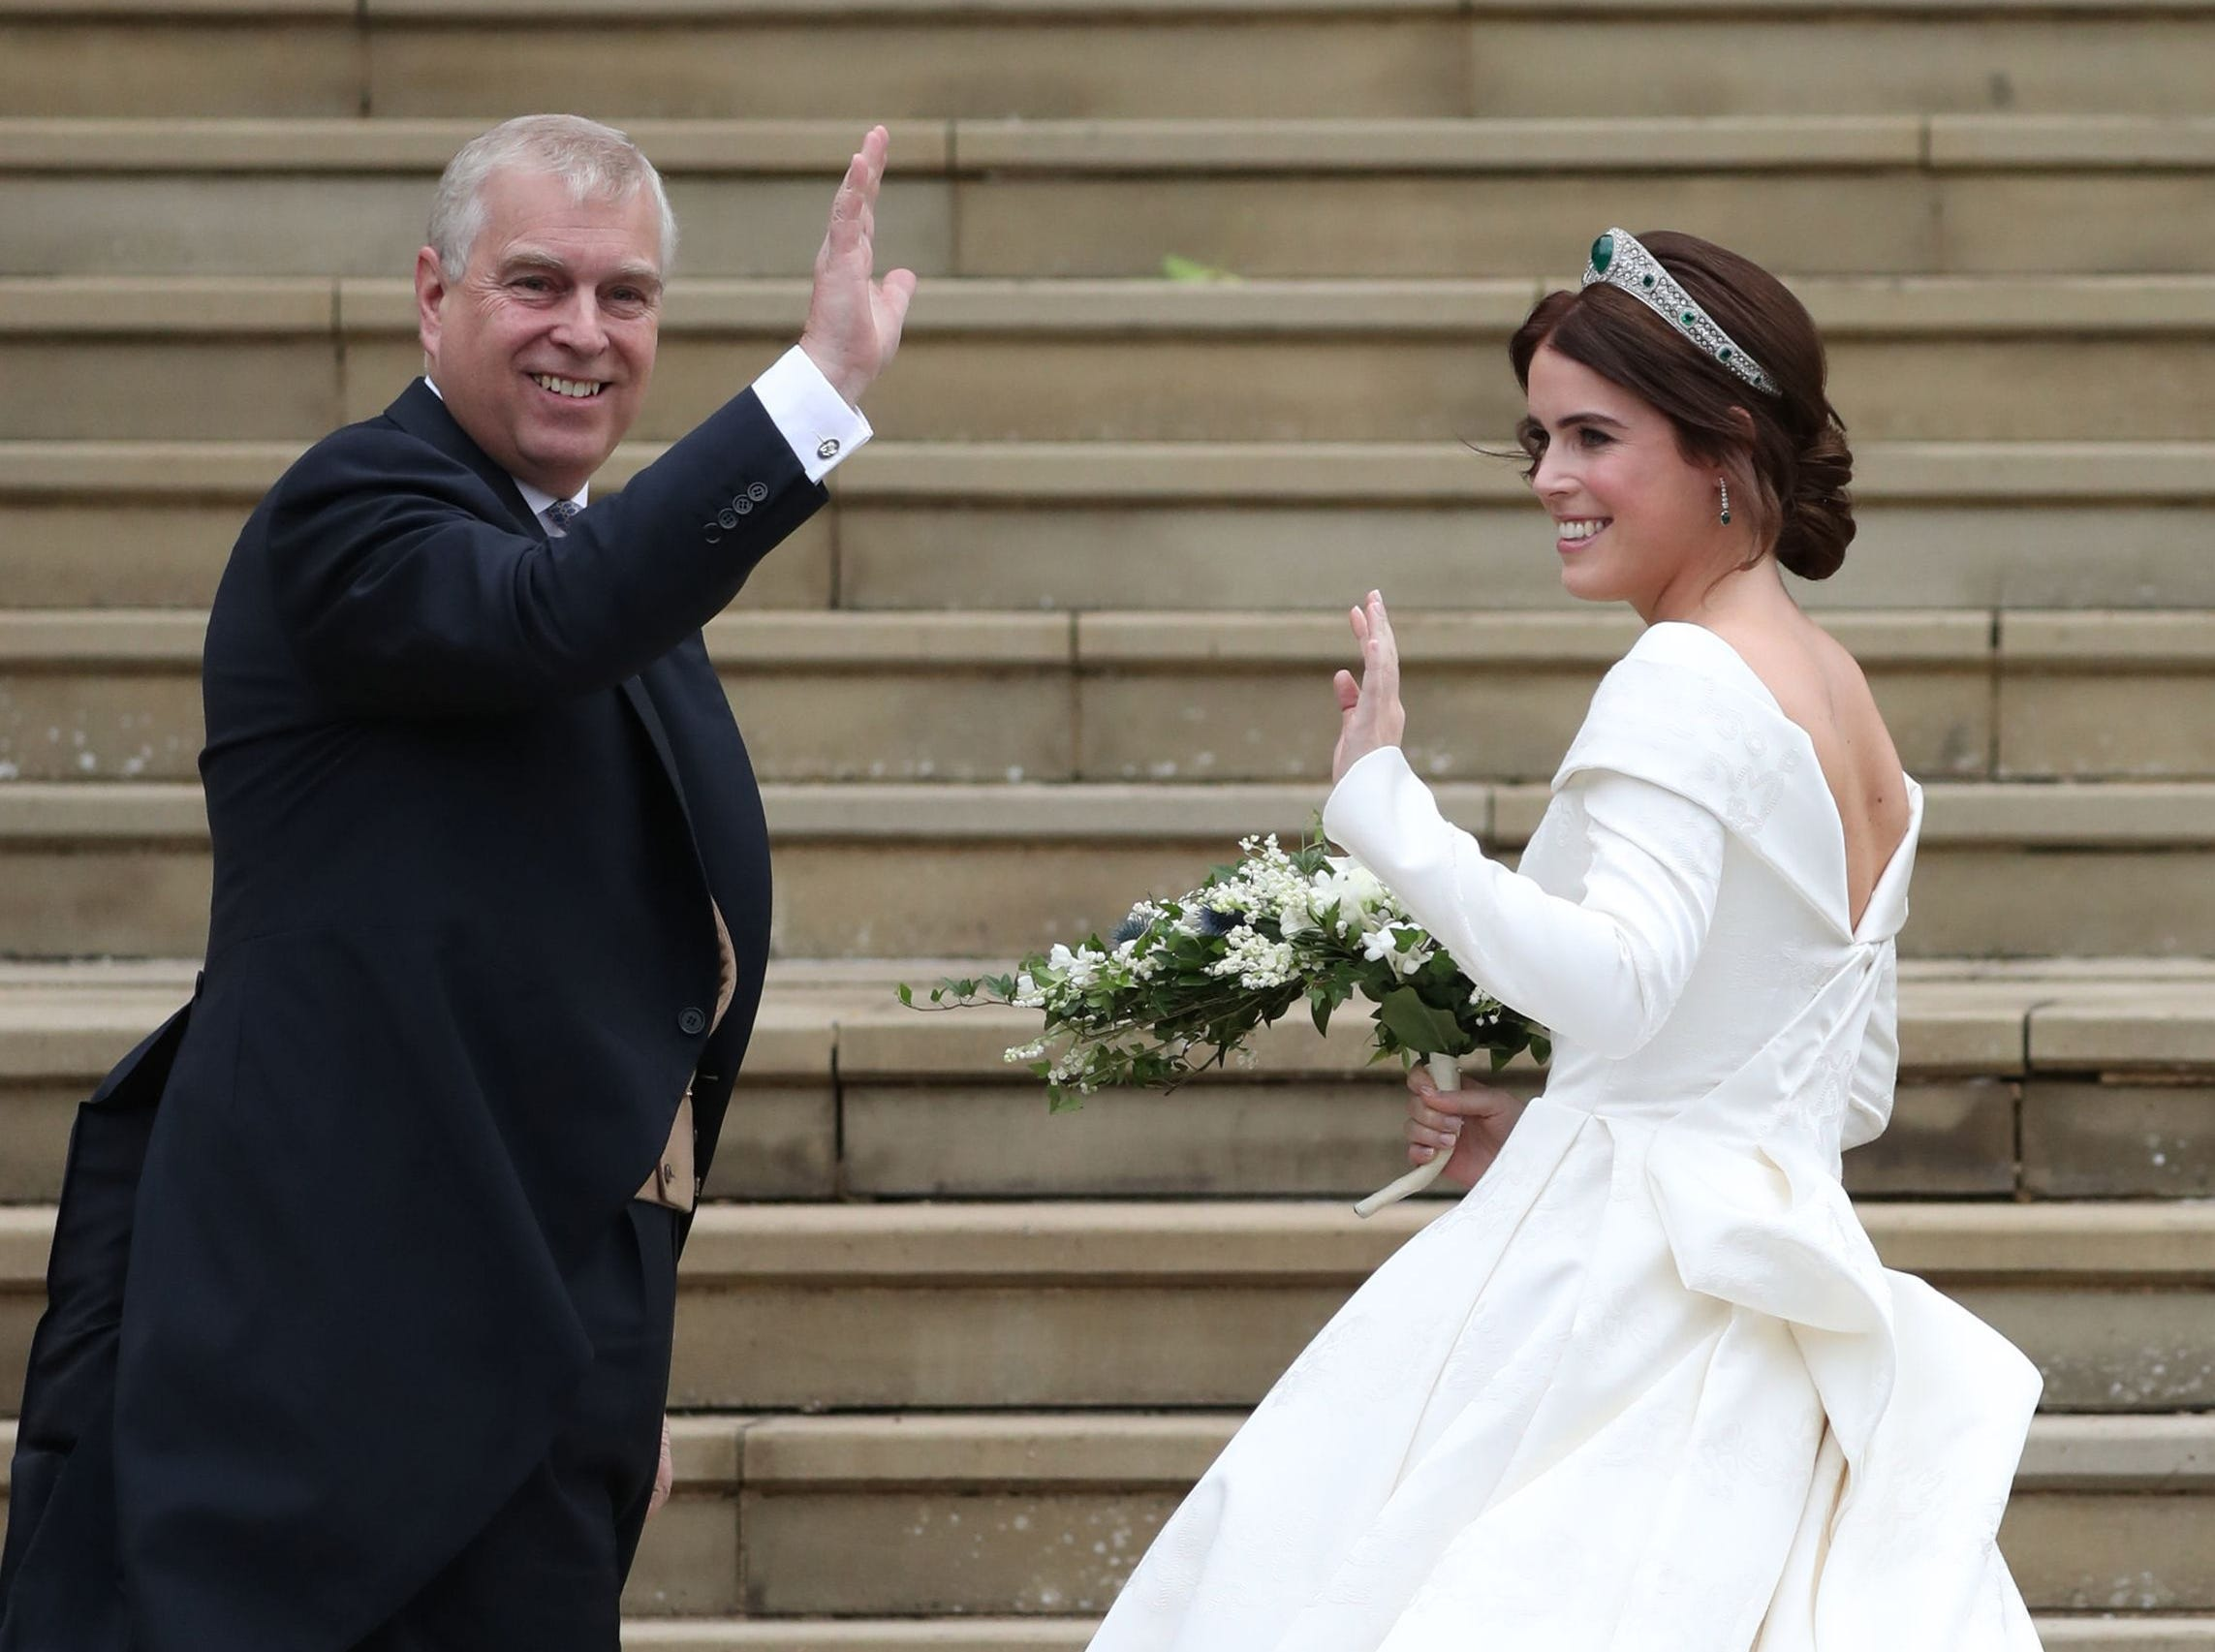 Britain's Princess Eugenie of York (R) arrives accompanied by her father Prince Andrew, Duke of York, (L) for her wedding to Jack Brooksbank at St George's Chapel, Windsor Castle, in Windsor, on October 12, 2018. (Photo by Steve Parsons / POOL / AFP)STEVE PARSONS/AFP/Getty Images ORIG FILE ID: AFP_19Y9TV